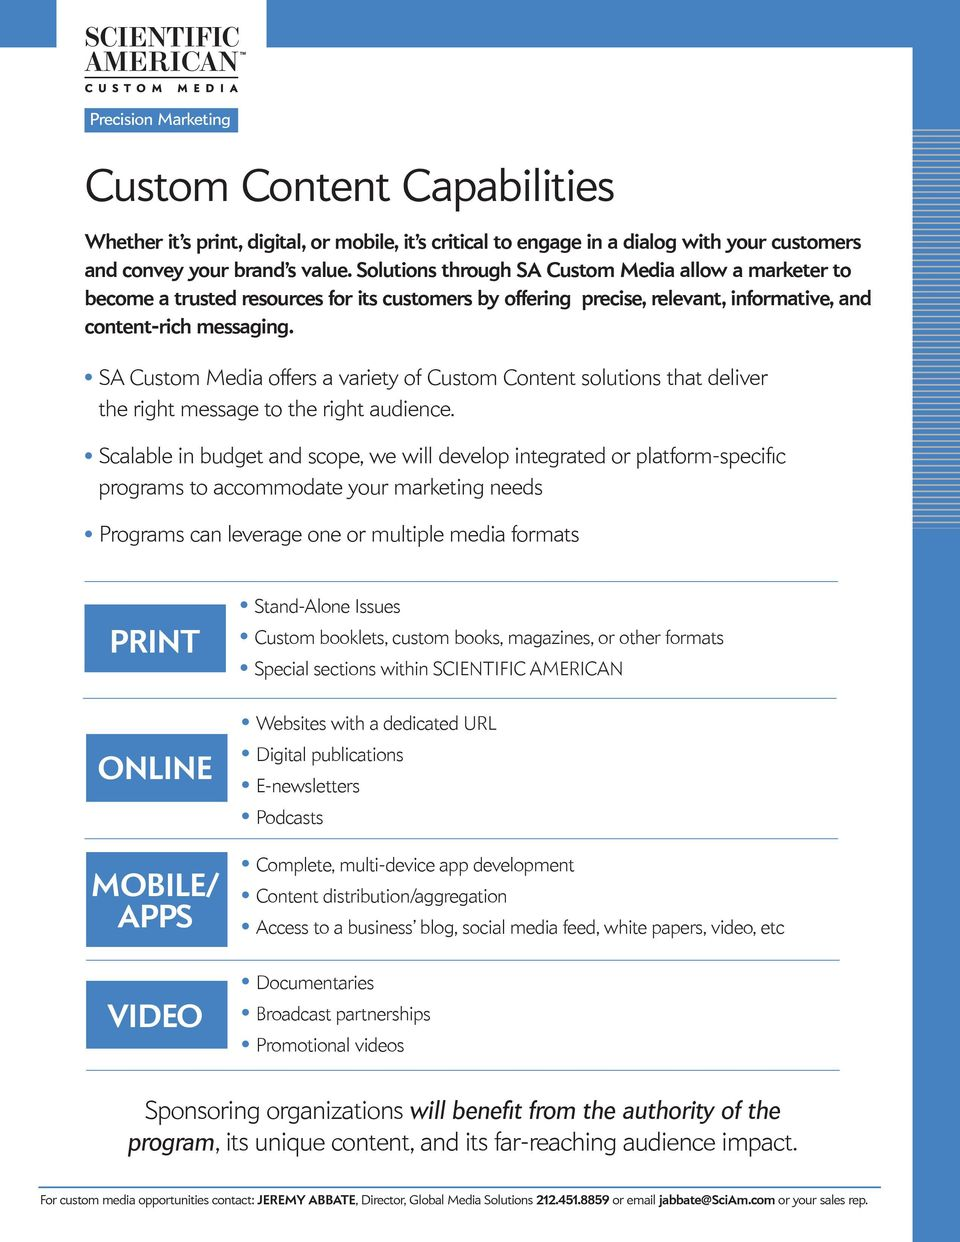 SA Custom Media offers a variety of Custom Content soutions that deiver the right message to the right audience.